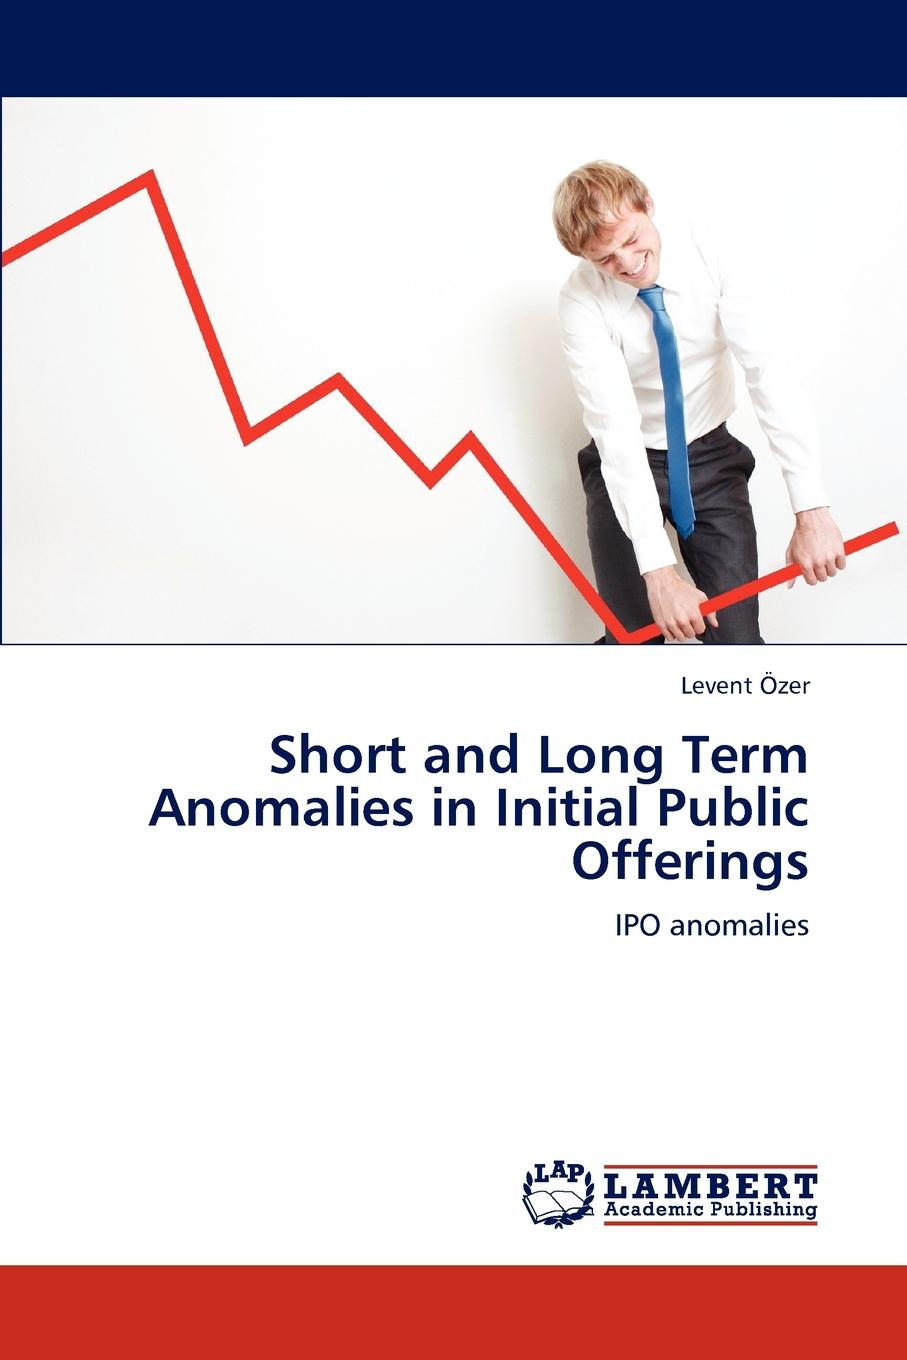 Levent Zer, Levent Ozer Short and Long Term Anomalies in Initial Public Offerings halil kiymaz market microstructure in emerging and developed markets price discovery information flows and transaction costs